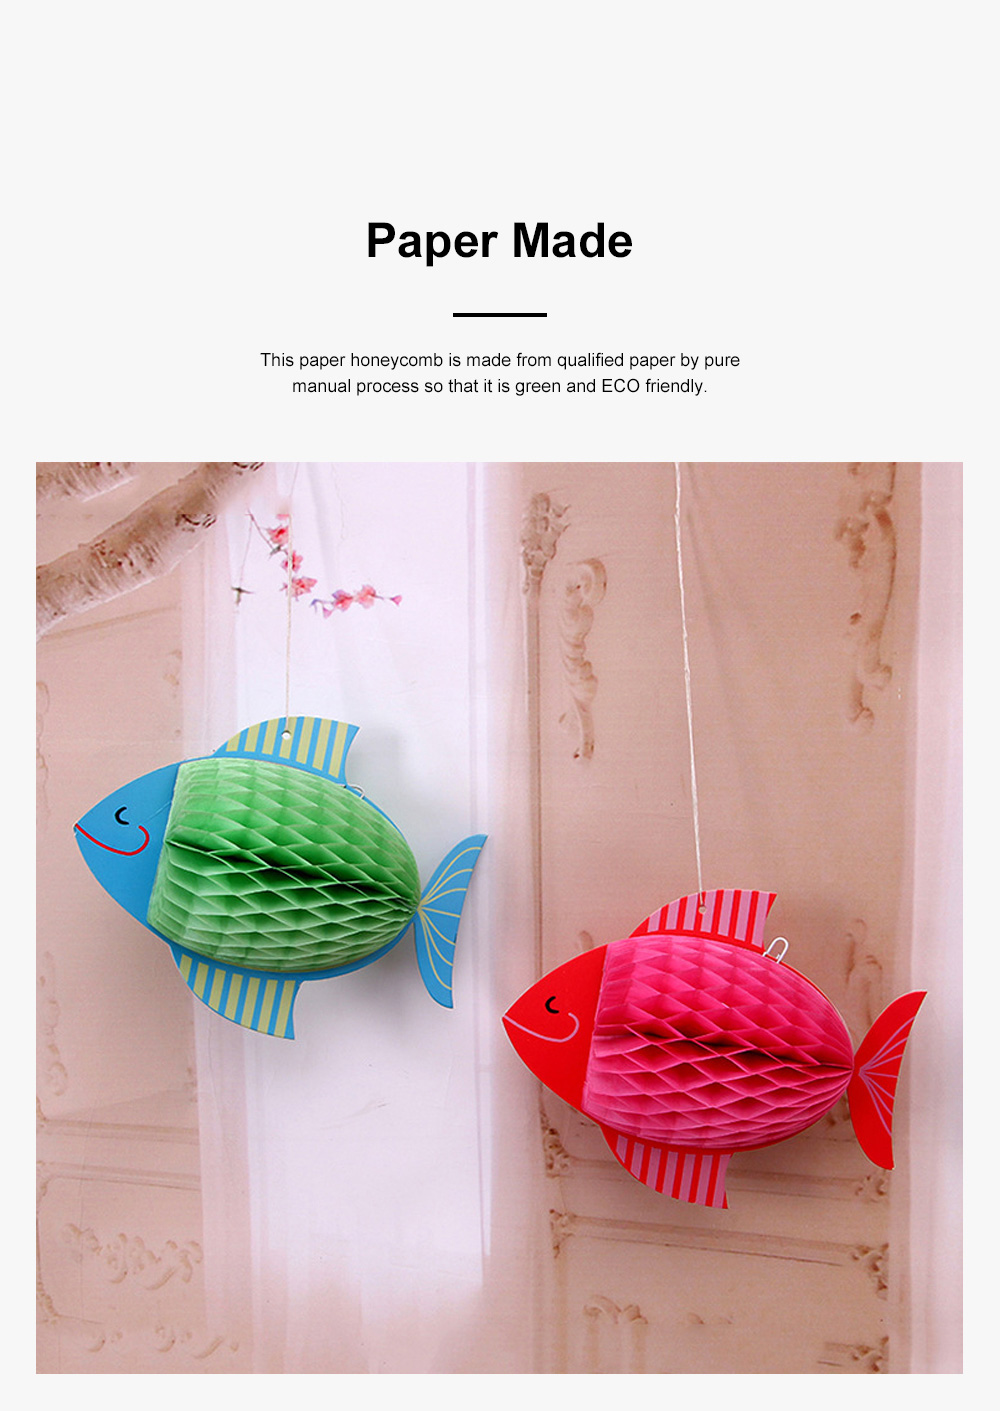 6pcs Festive Decoration Bird Fish Paper Honeycomb Party Use Three-dimensional Card Fish Paper Honeycomb Paper Flowers Ball 5